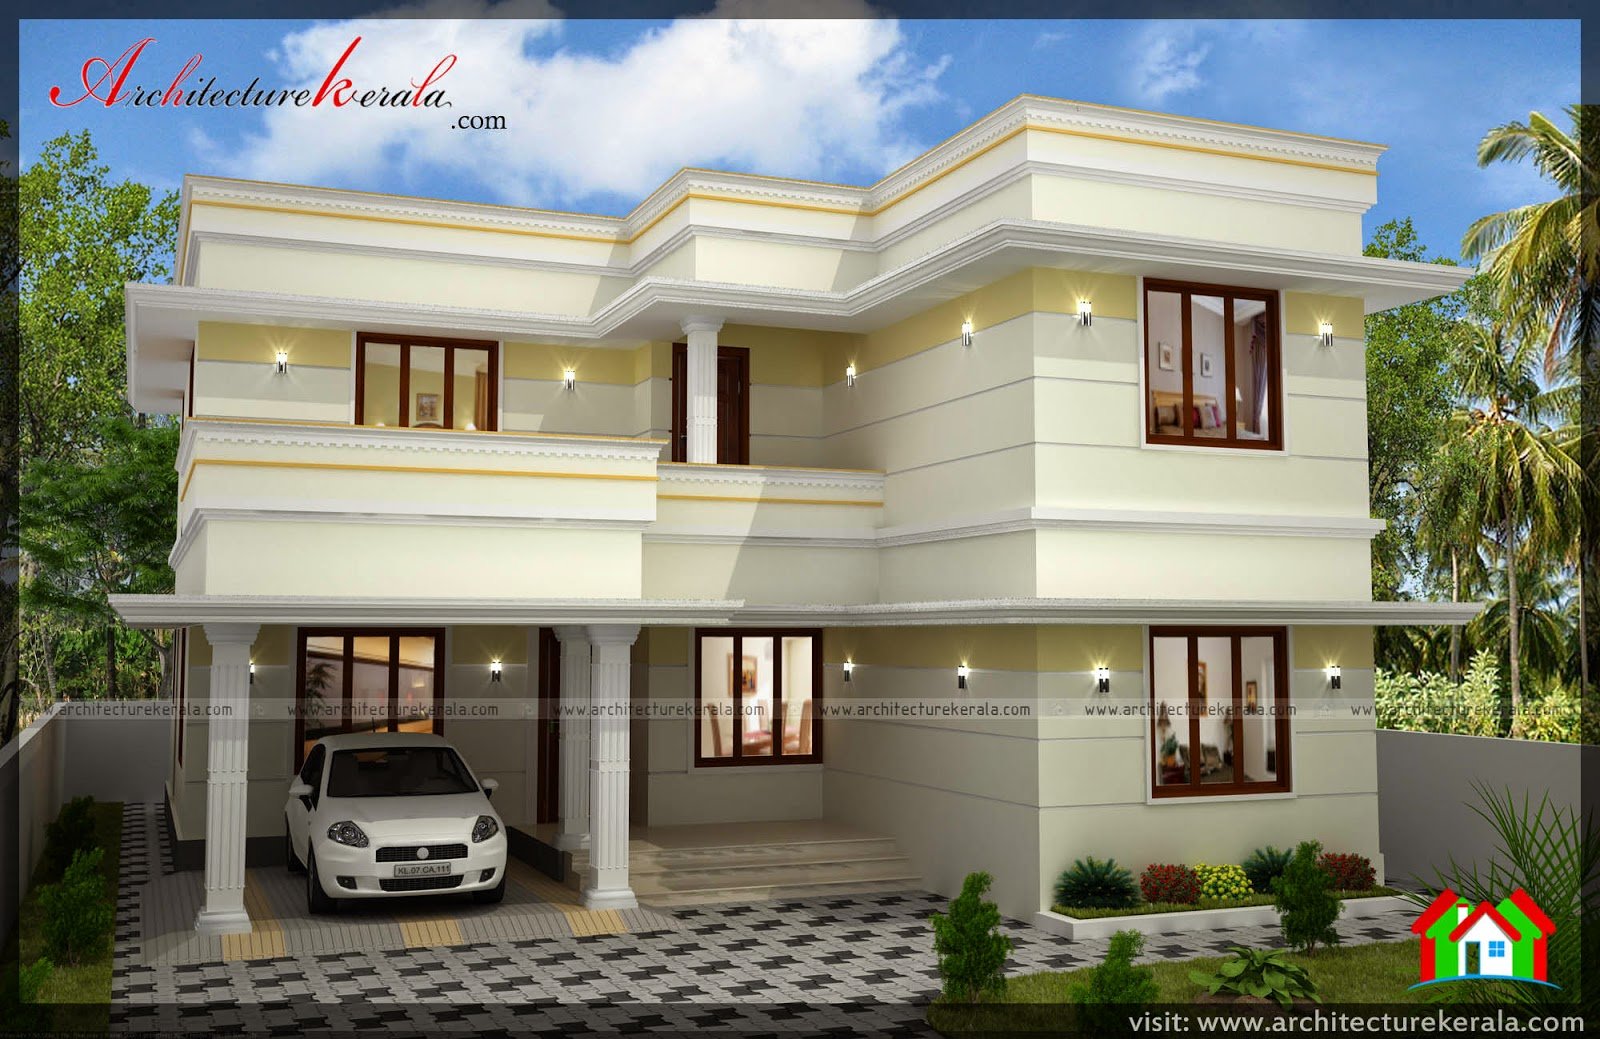 Three bedroom two storey house plan architecture kerala for 2 storey house design